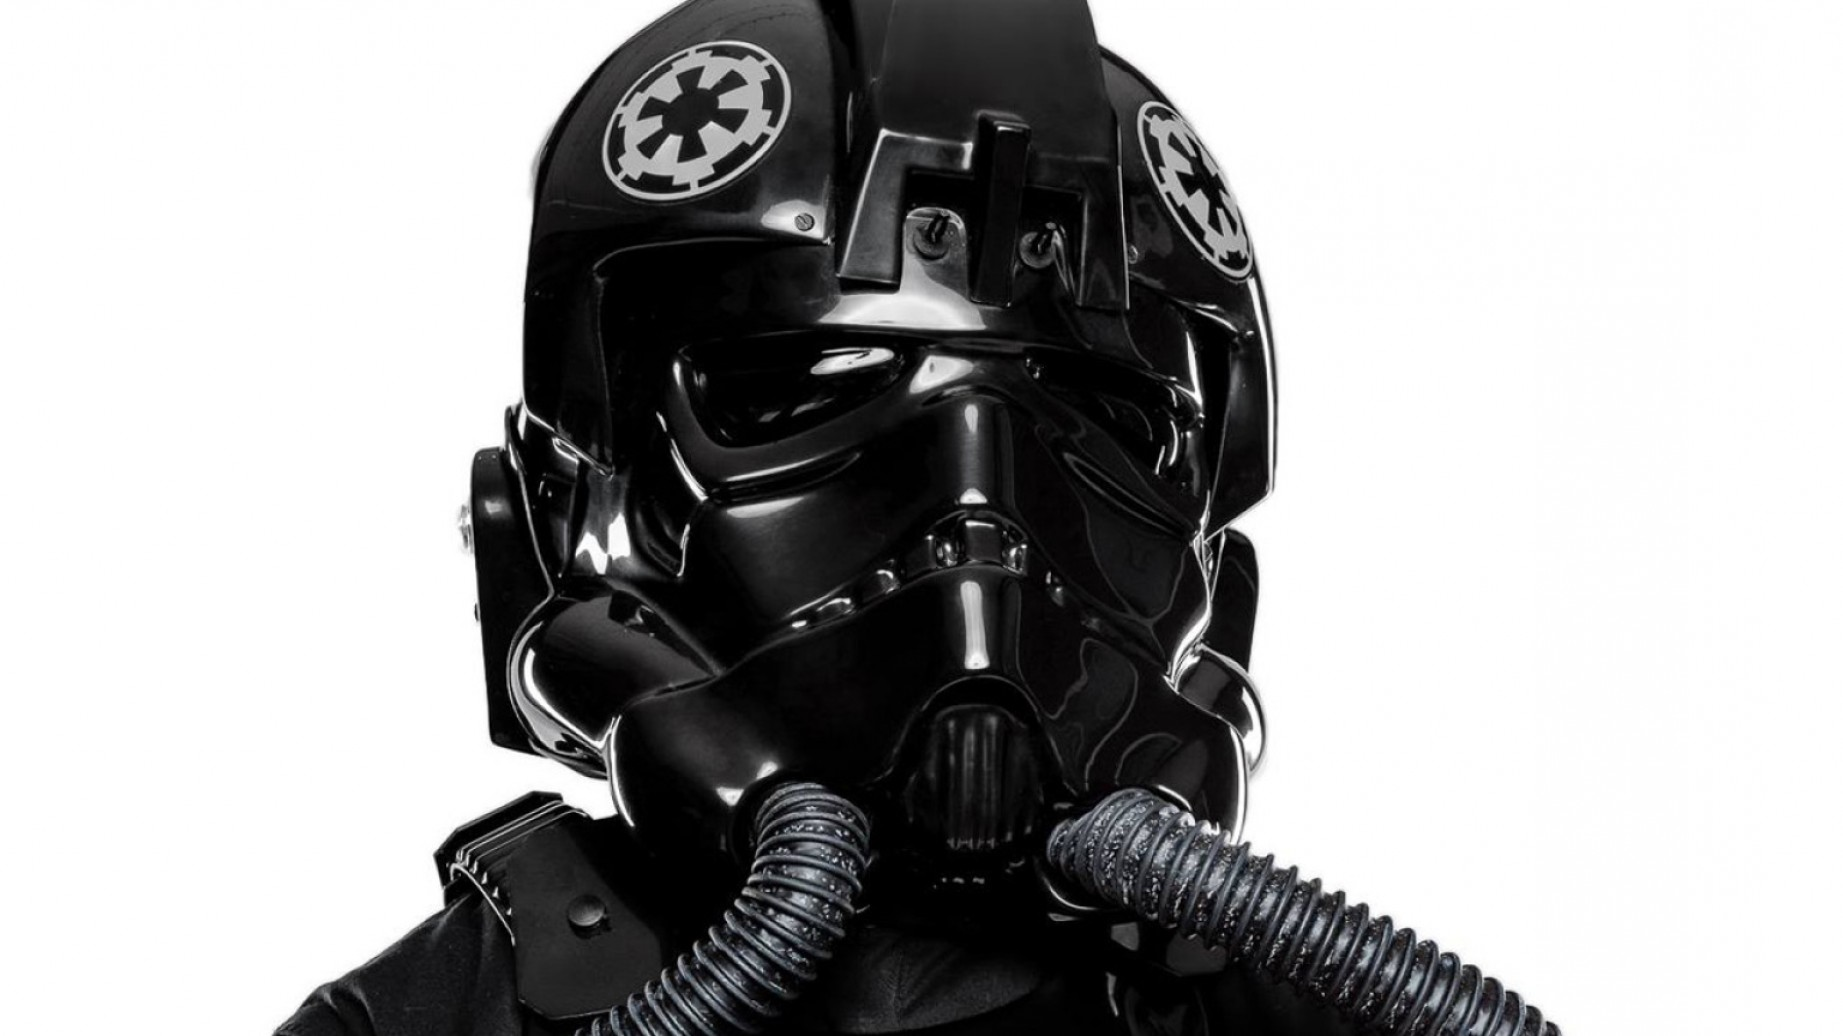 1843x1036 Anovos Tie Fighter Pilot Costume And Darth Vader Helmet First Look